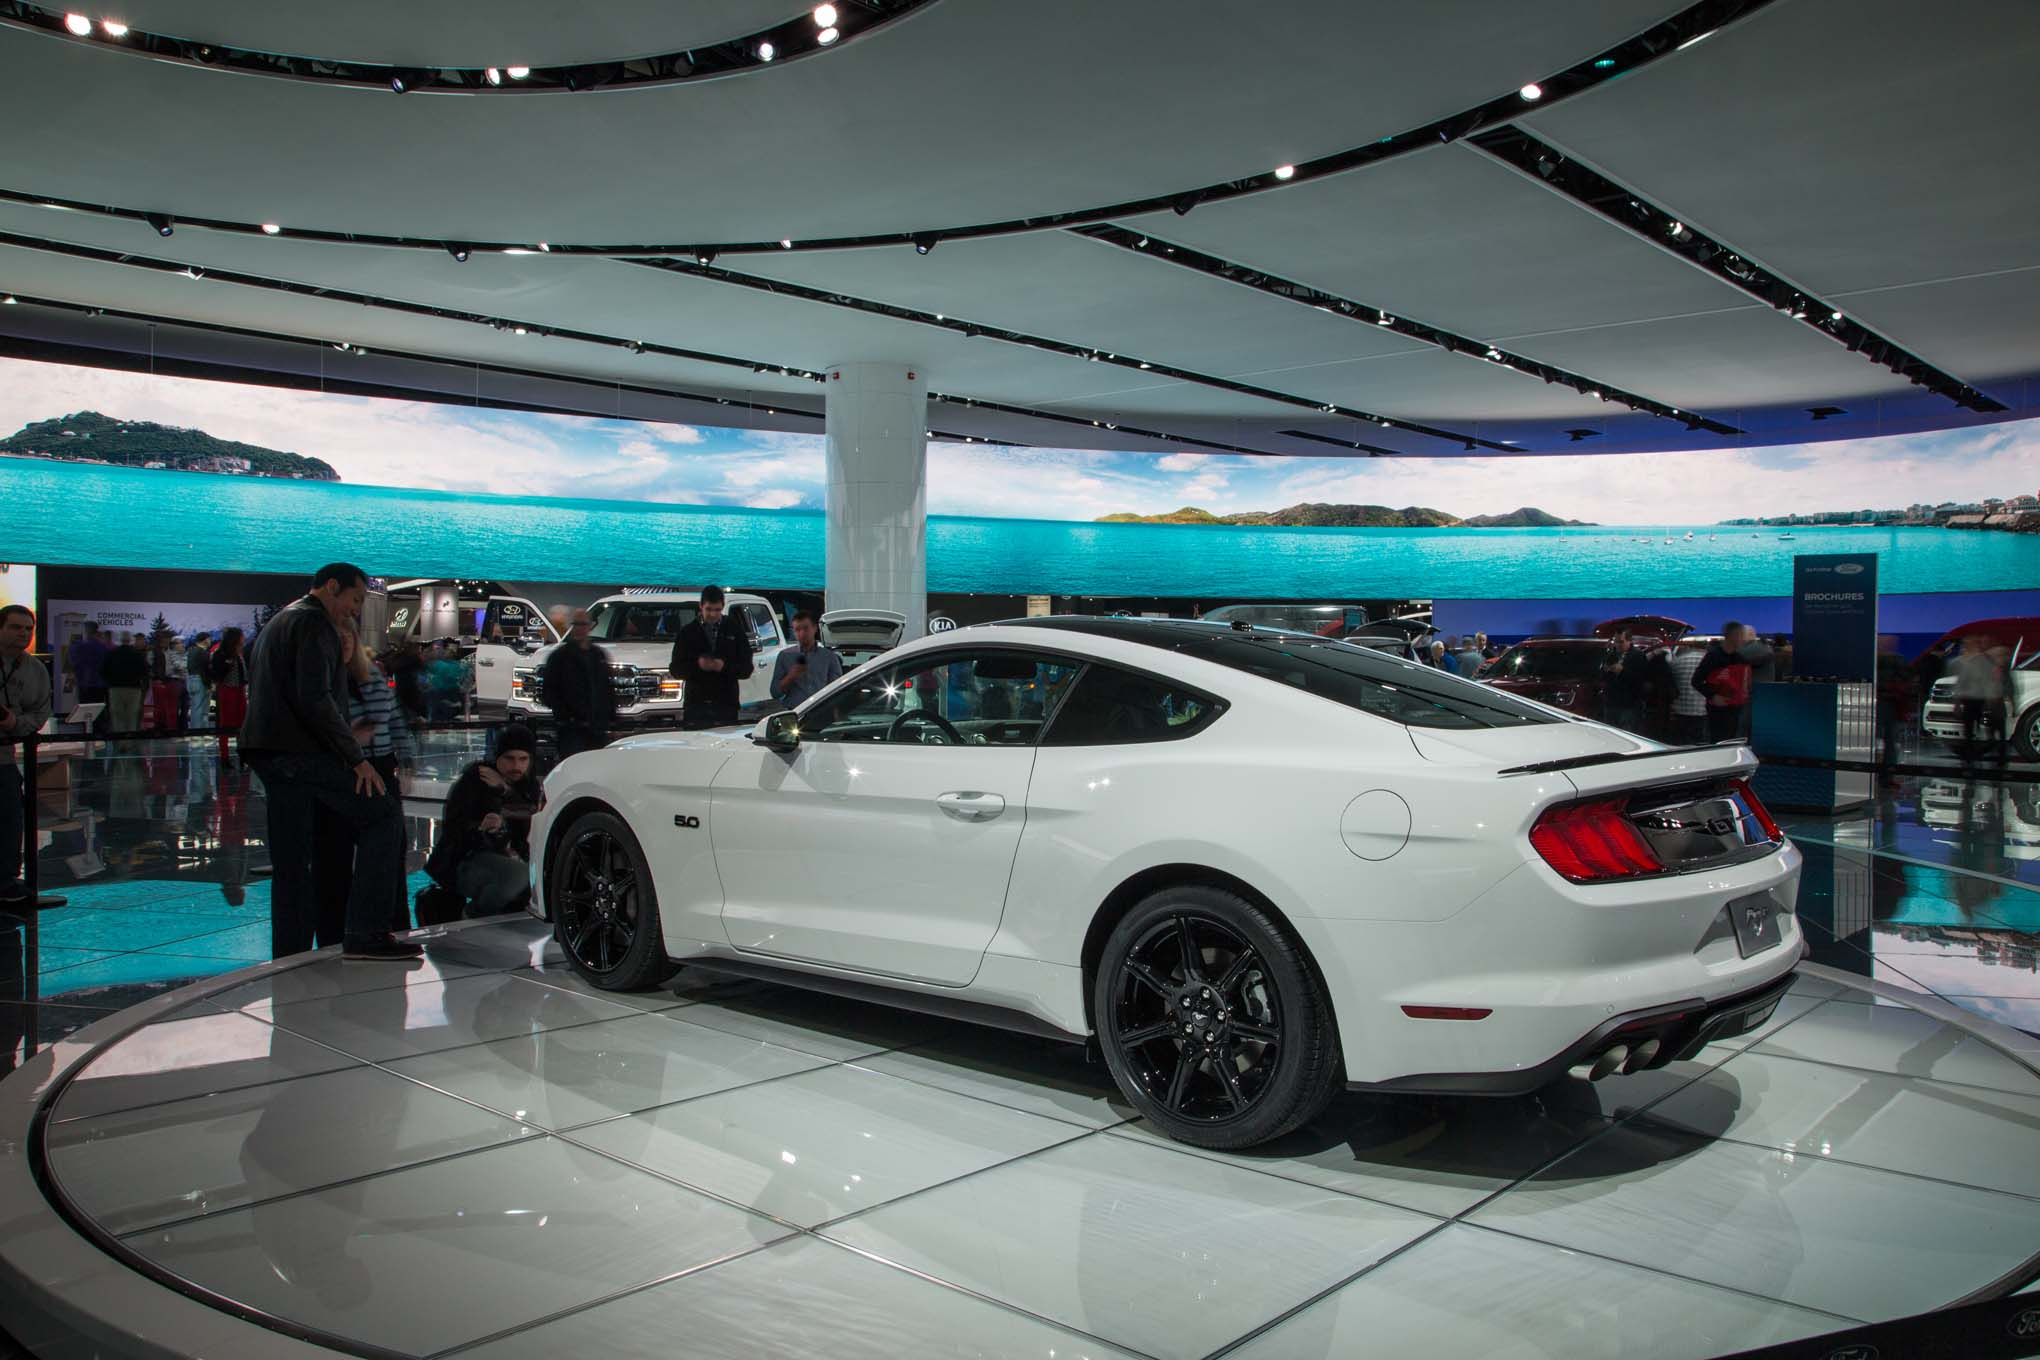 2018-Ford-Mustang-GT-rear-three-quarter